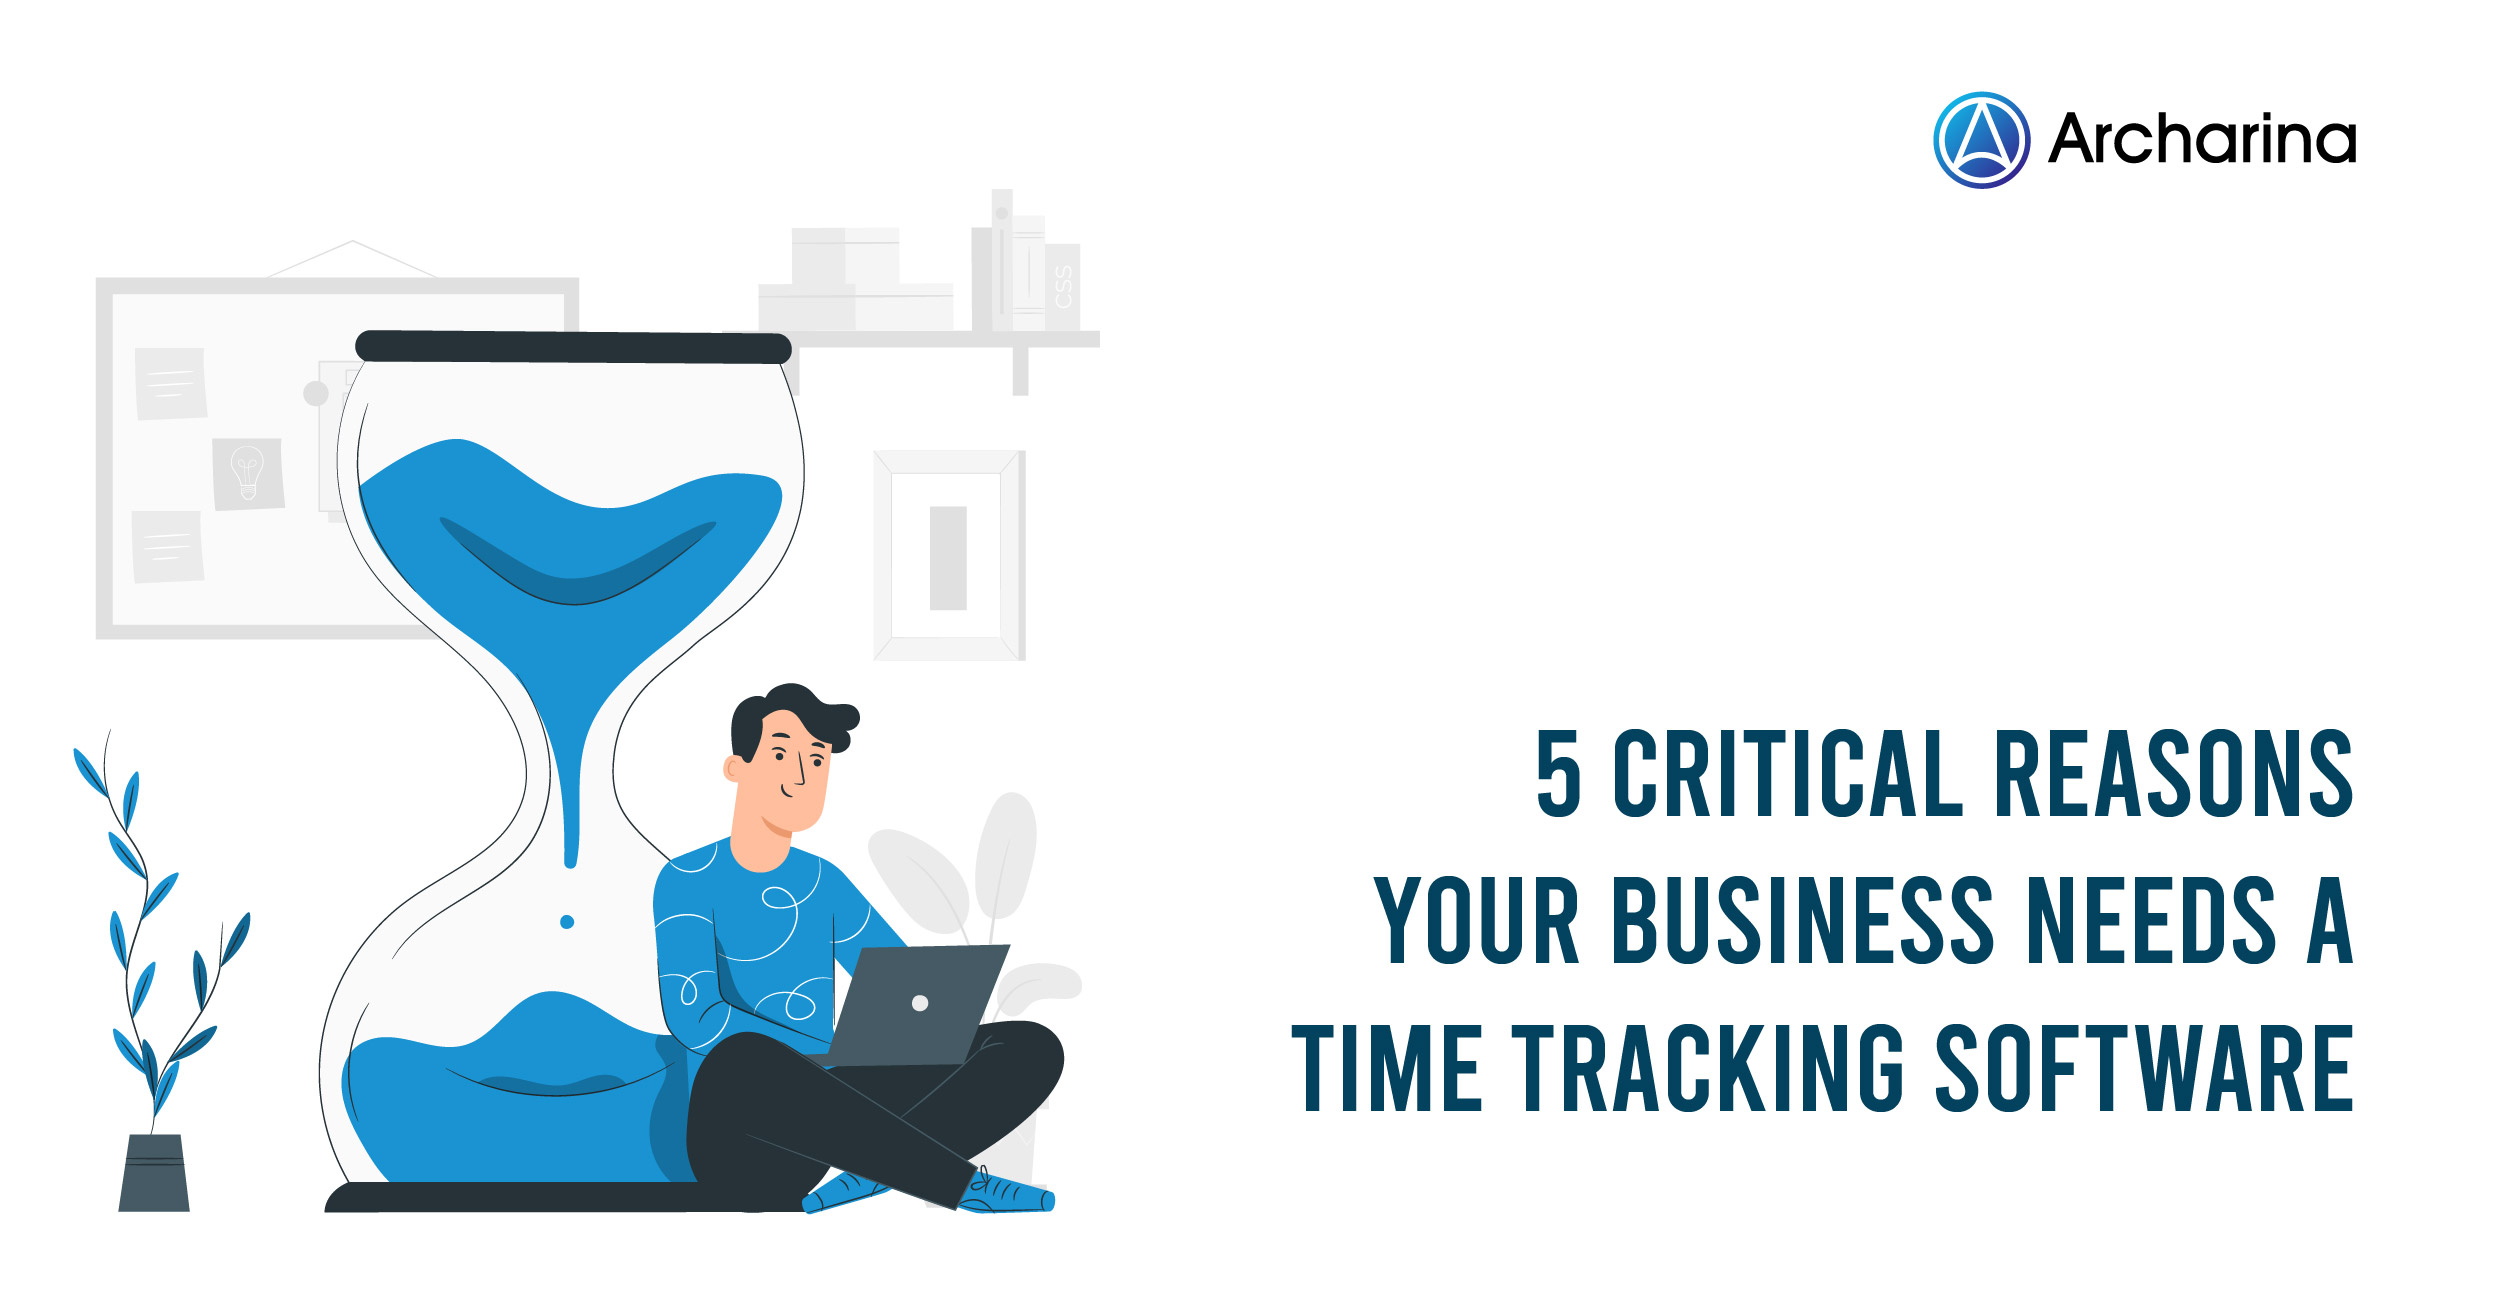 5 Critical Reasons Your Business Needs a Time Tracking Software